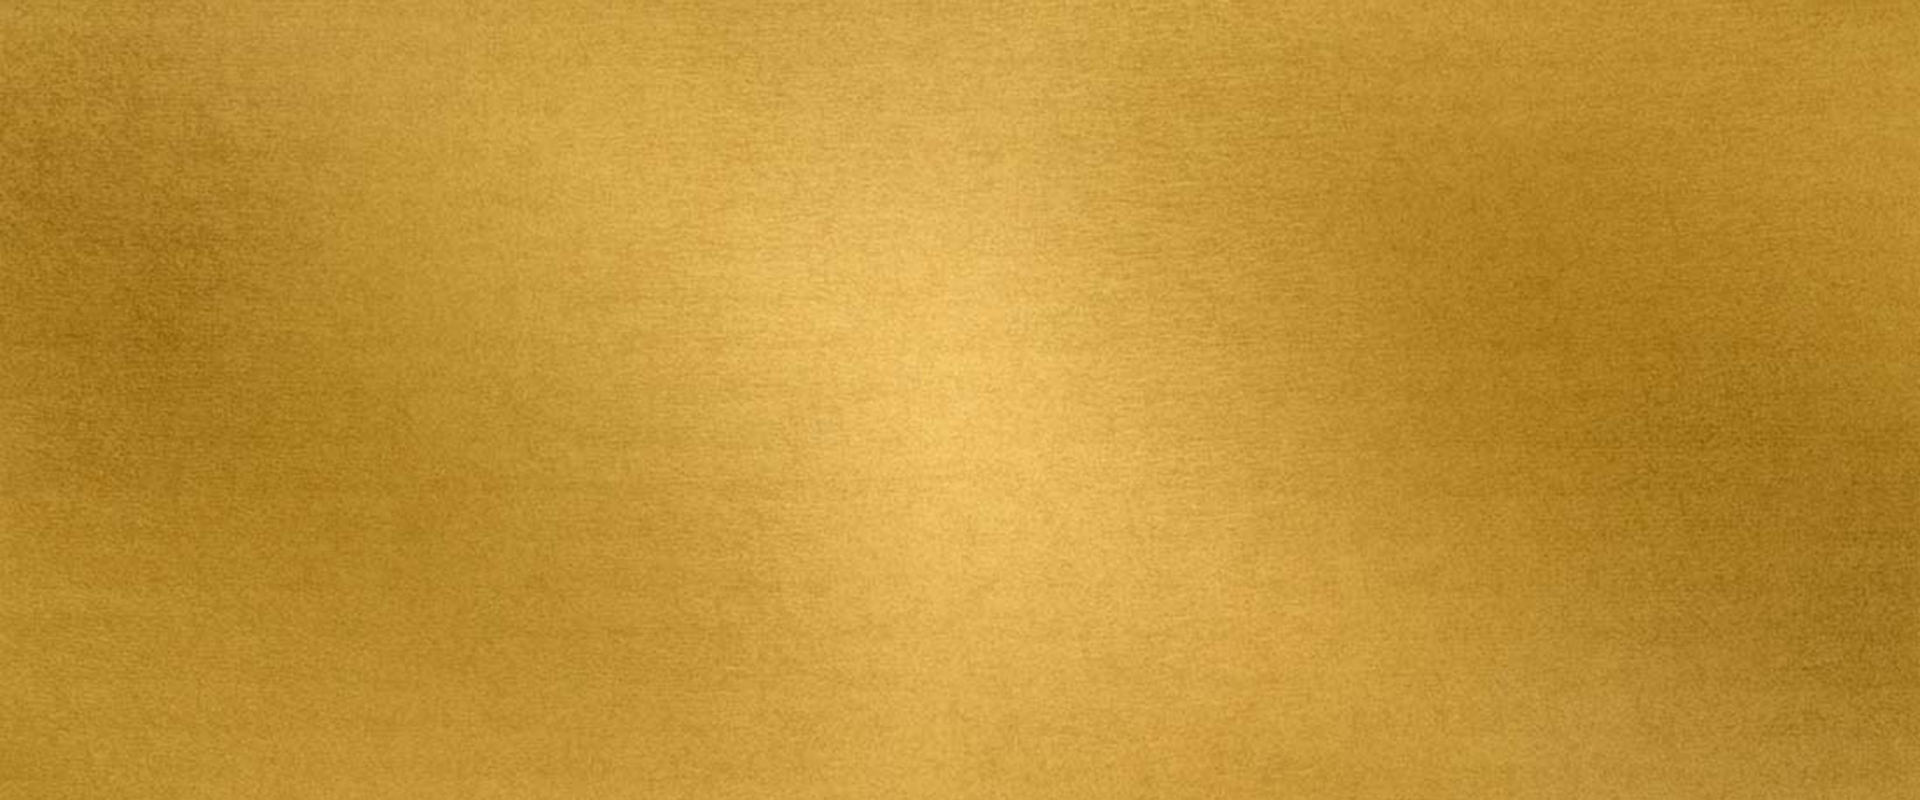 Burlap Tela Vintage Velho Background Com Antique Textura